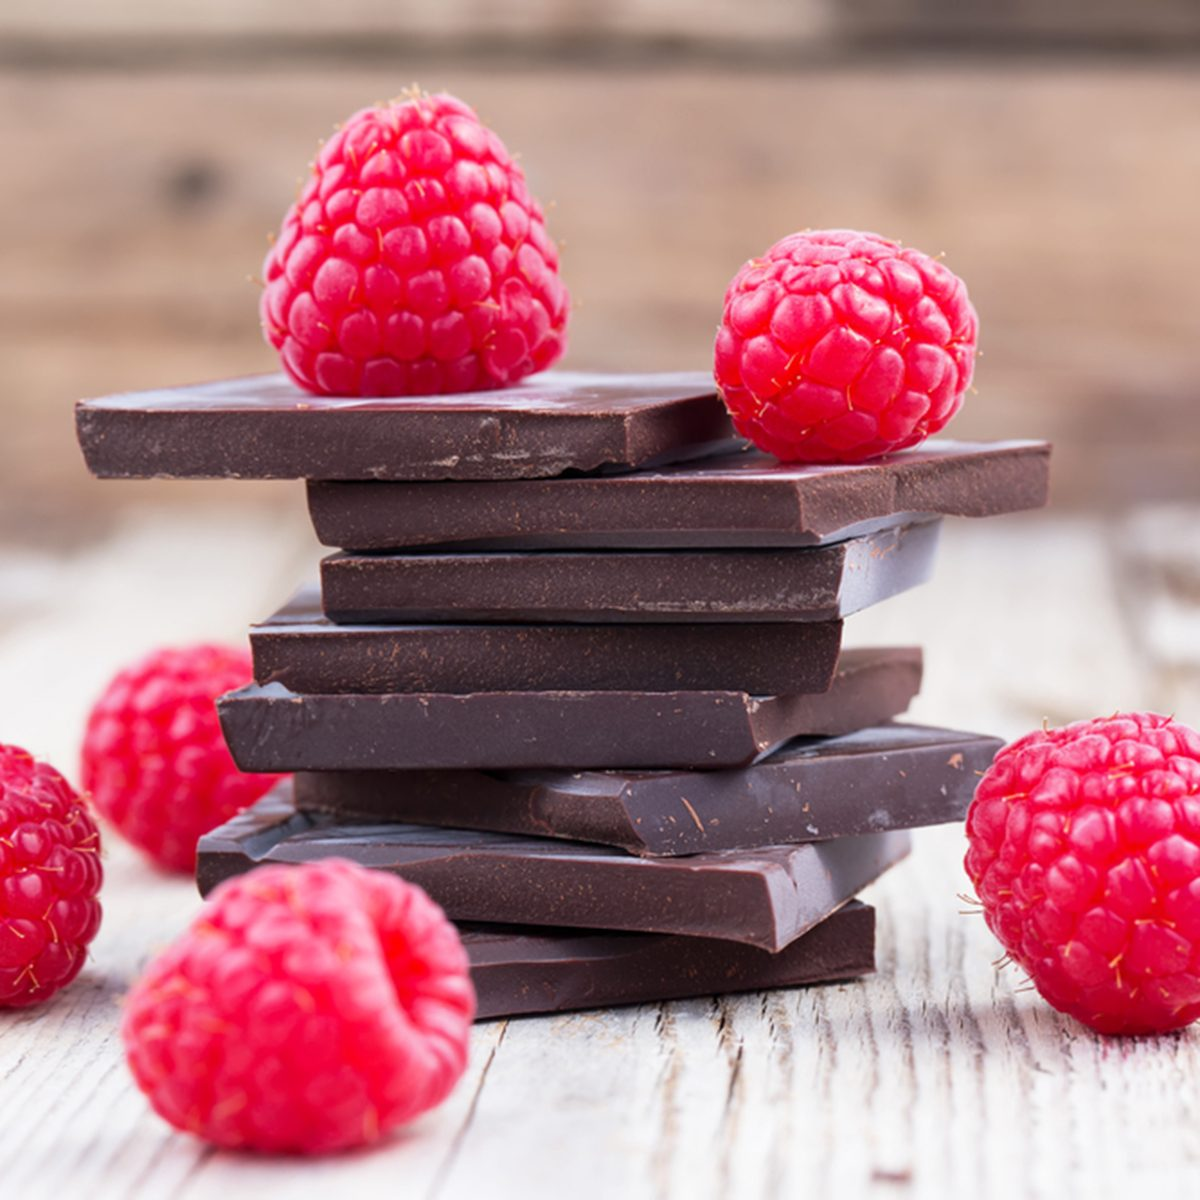 Dark chocolate stack with fresh raspberries, on wooden table.